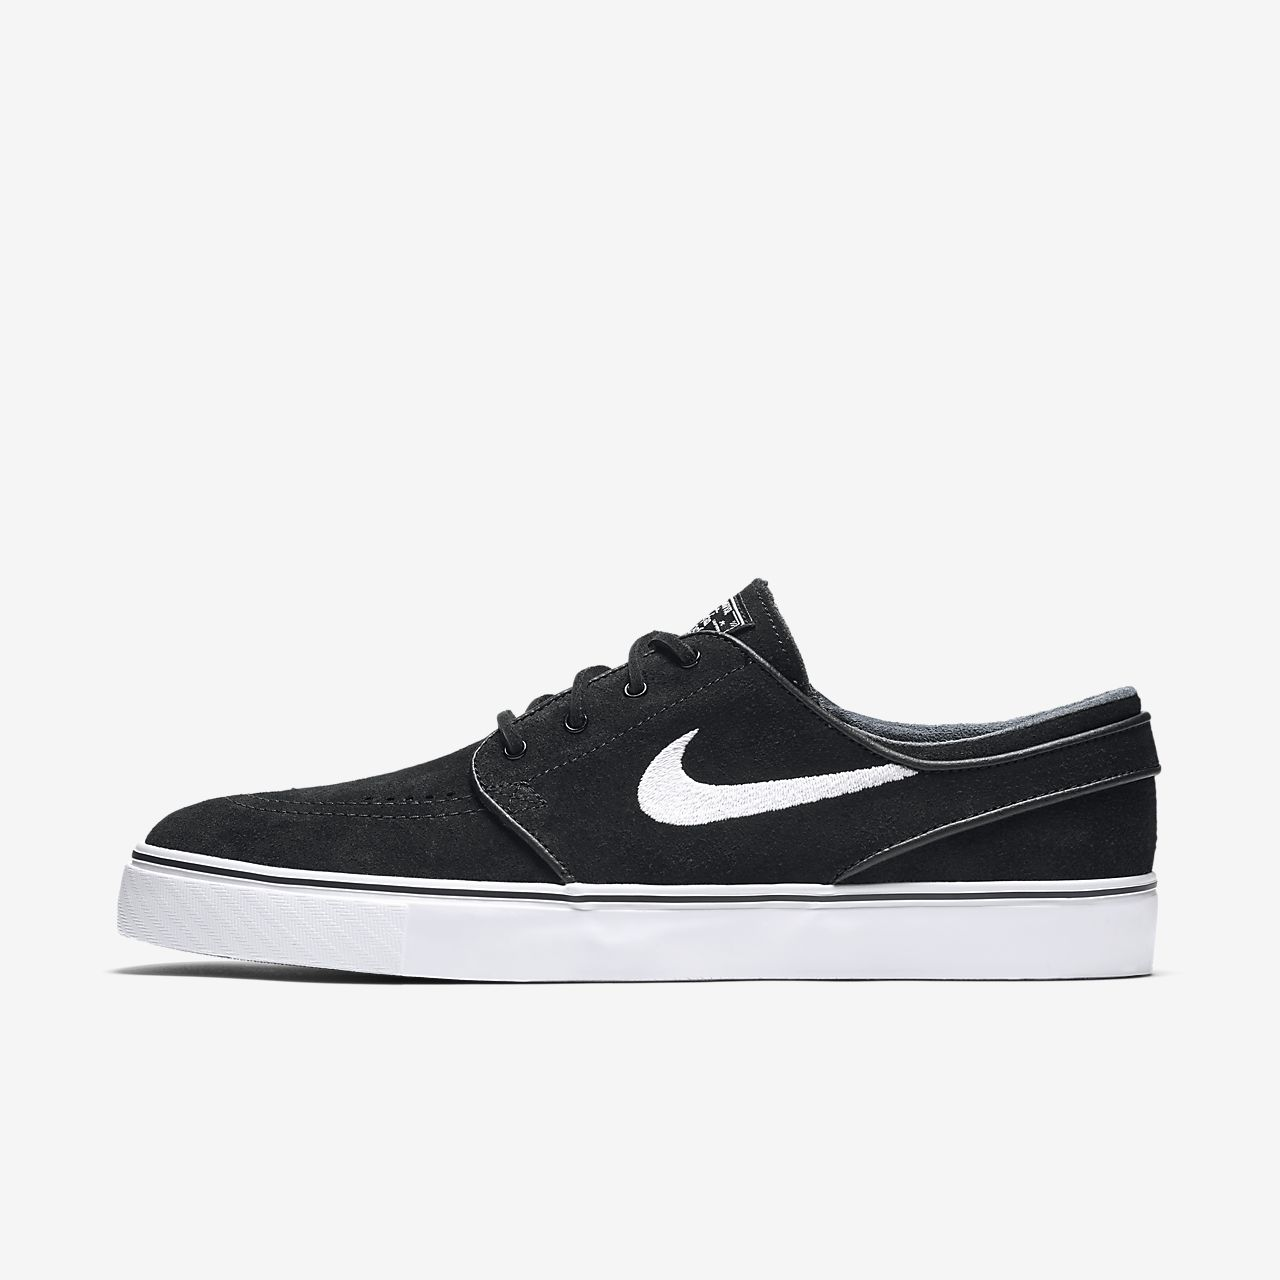 huge discount 61ea1 75440 Men s Skate Shoe. Nike SB Zoom Stefan Janoski OG. £64.95